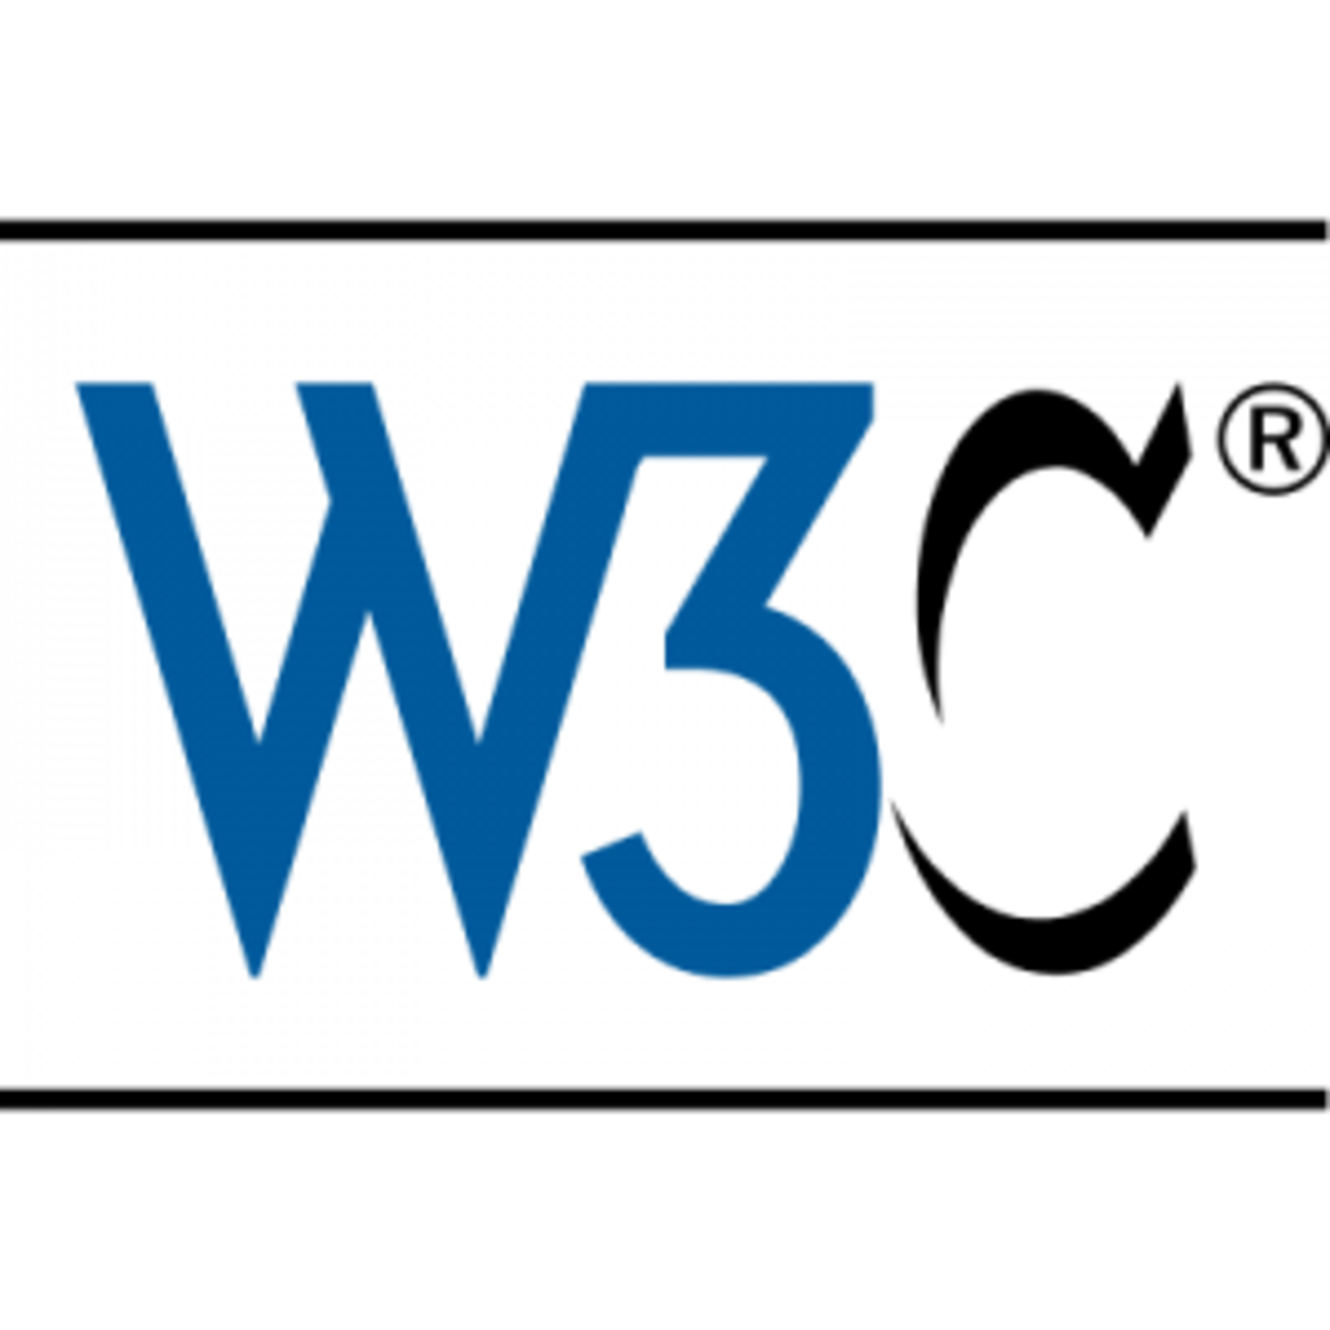 How to create and run your own w3c validation server